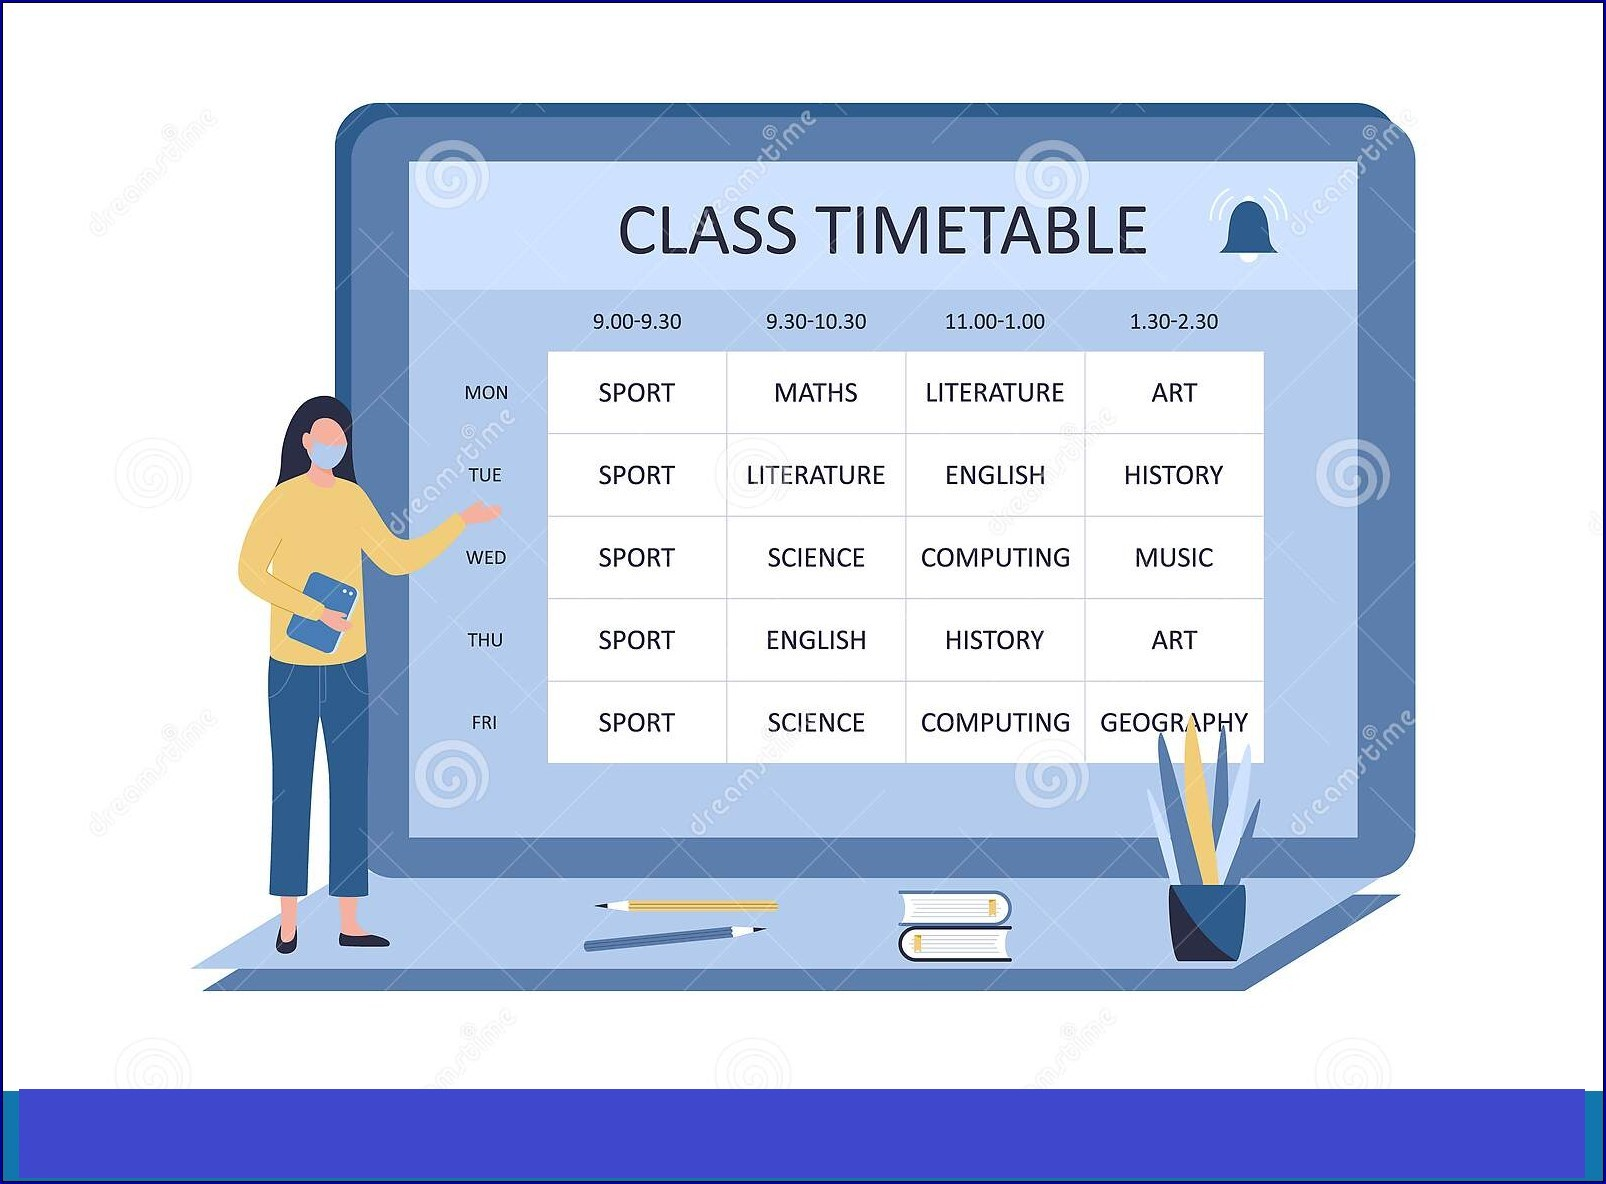 Class Timetable Example